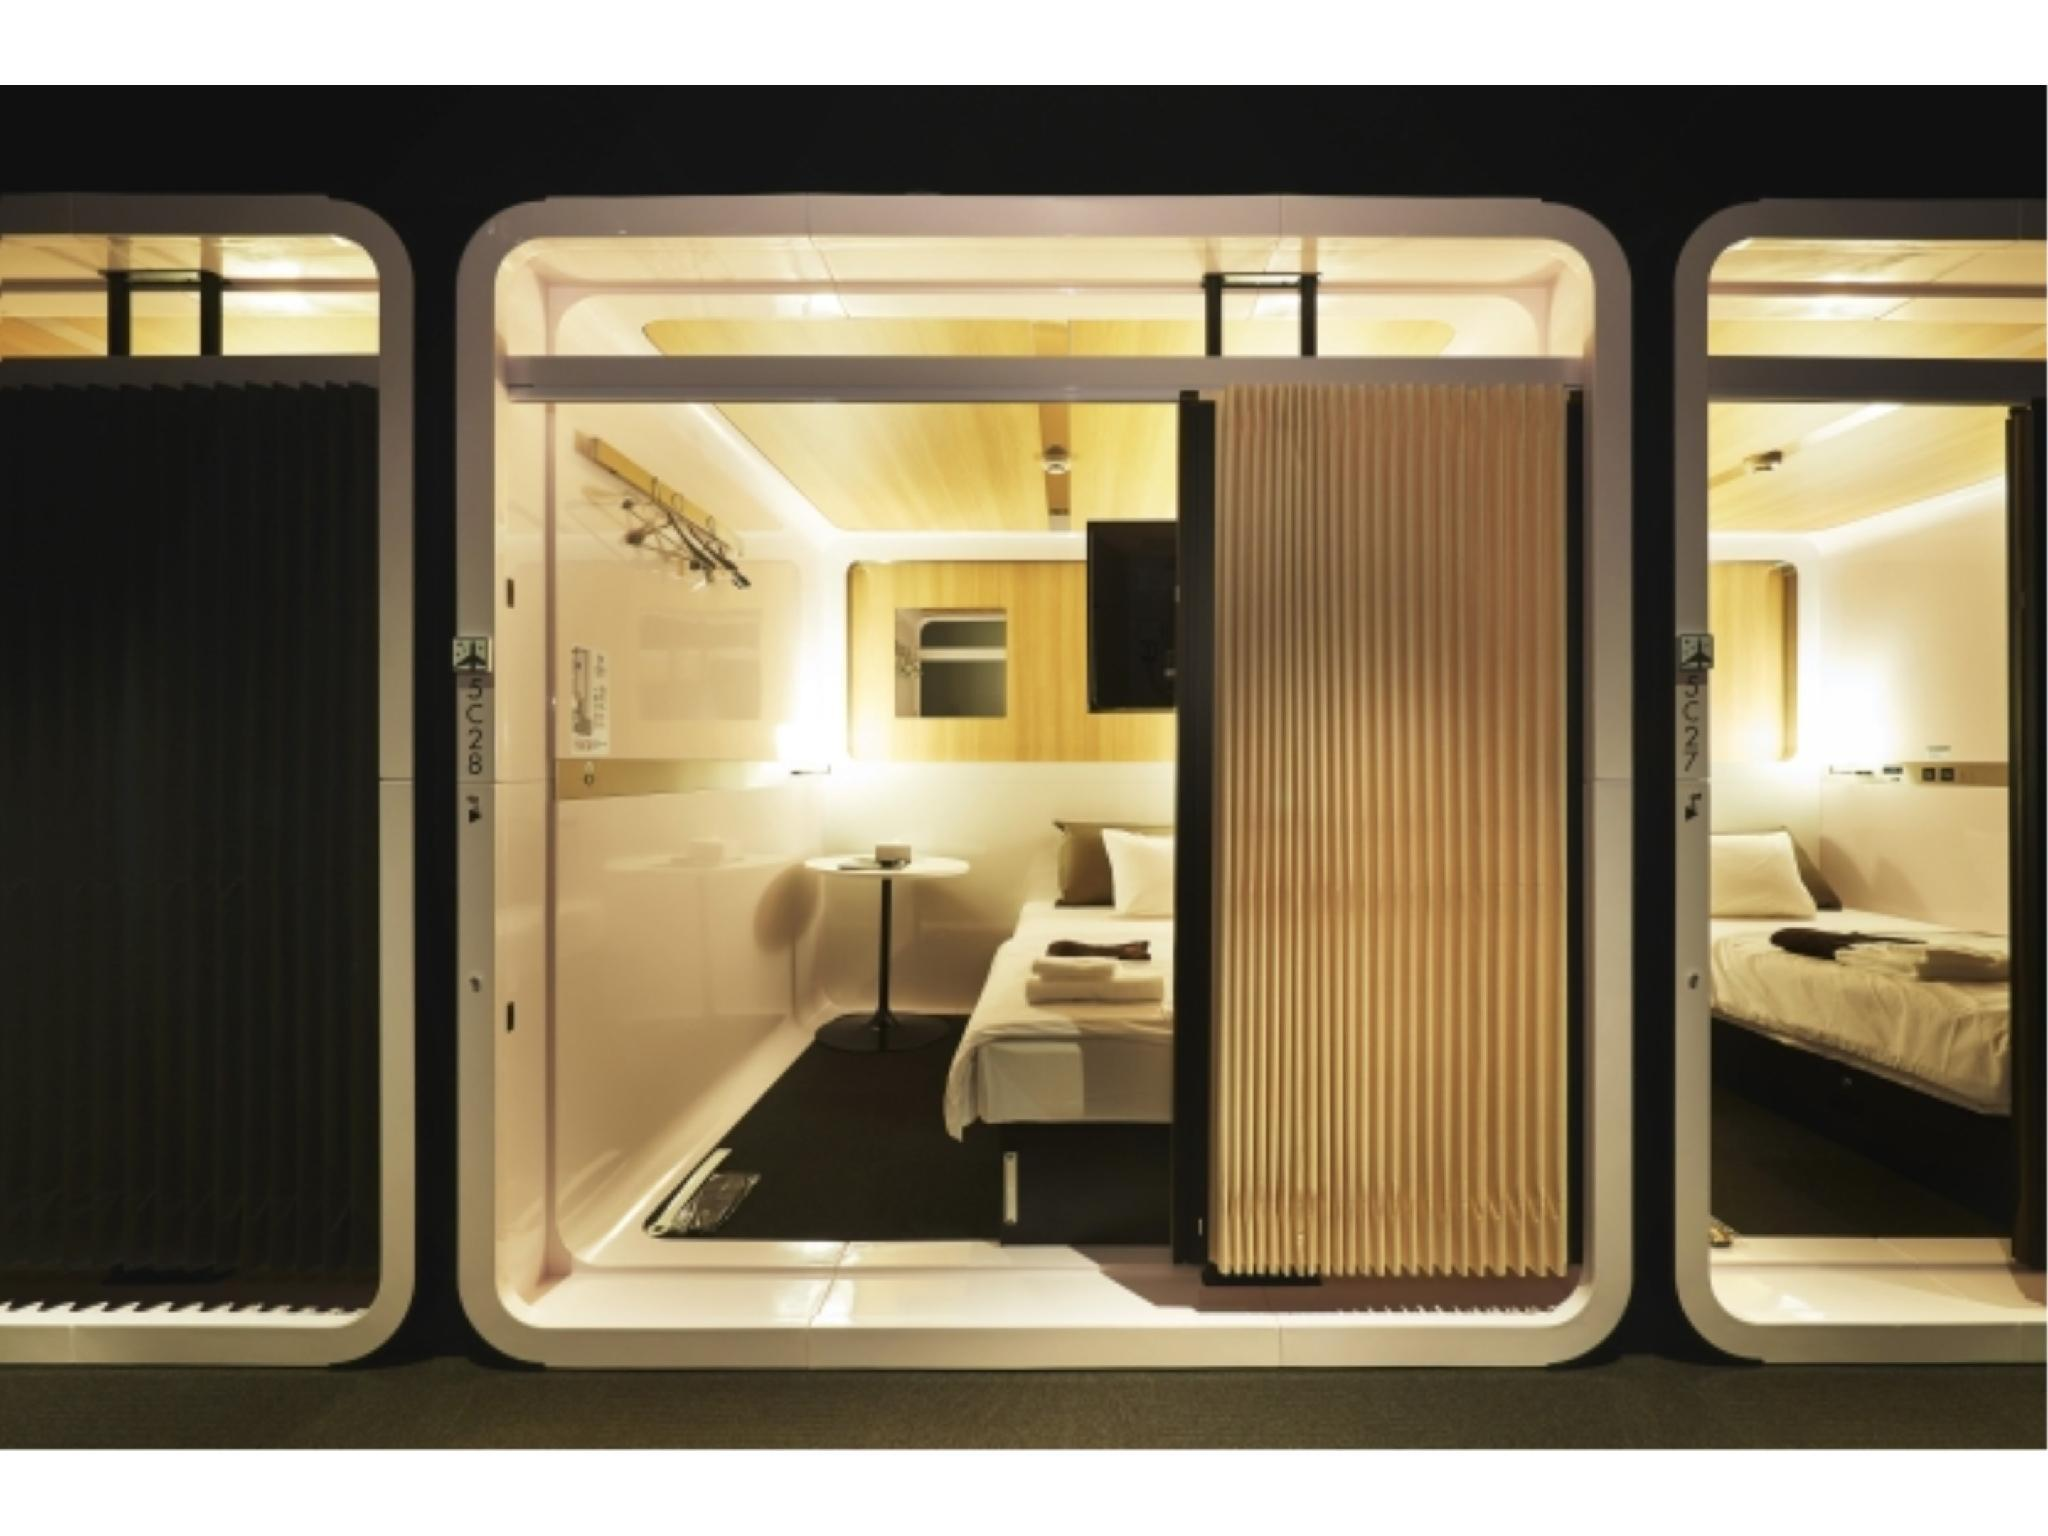 女士頭等客艙房 (Ladies' First Class Cabin Room)